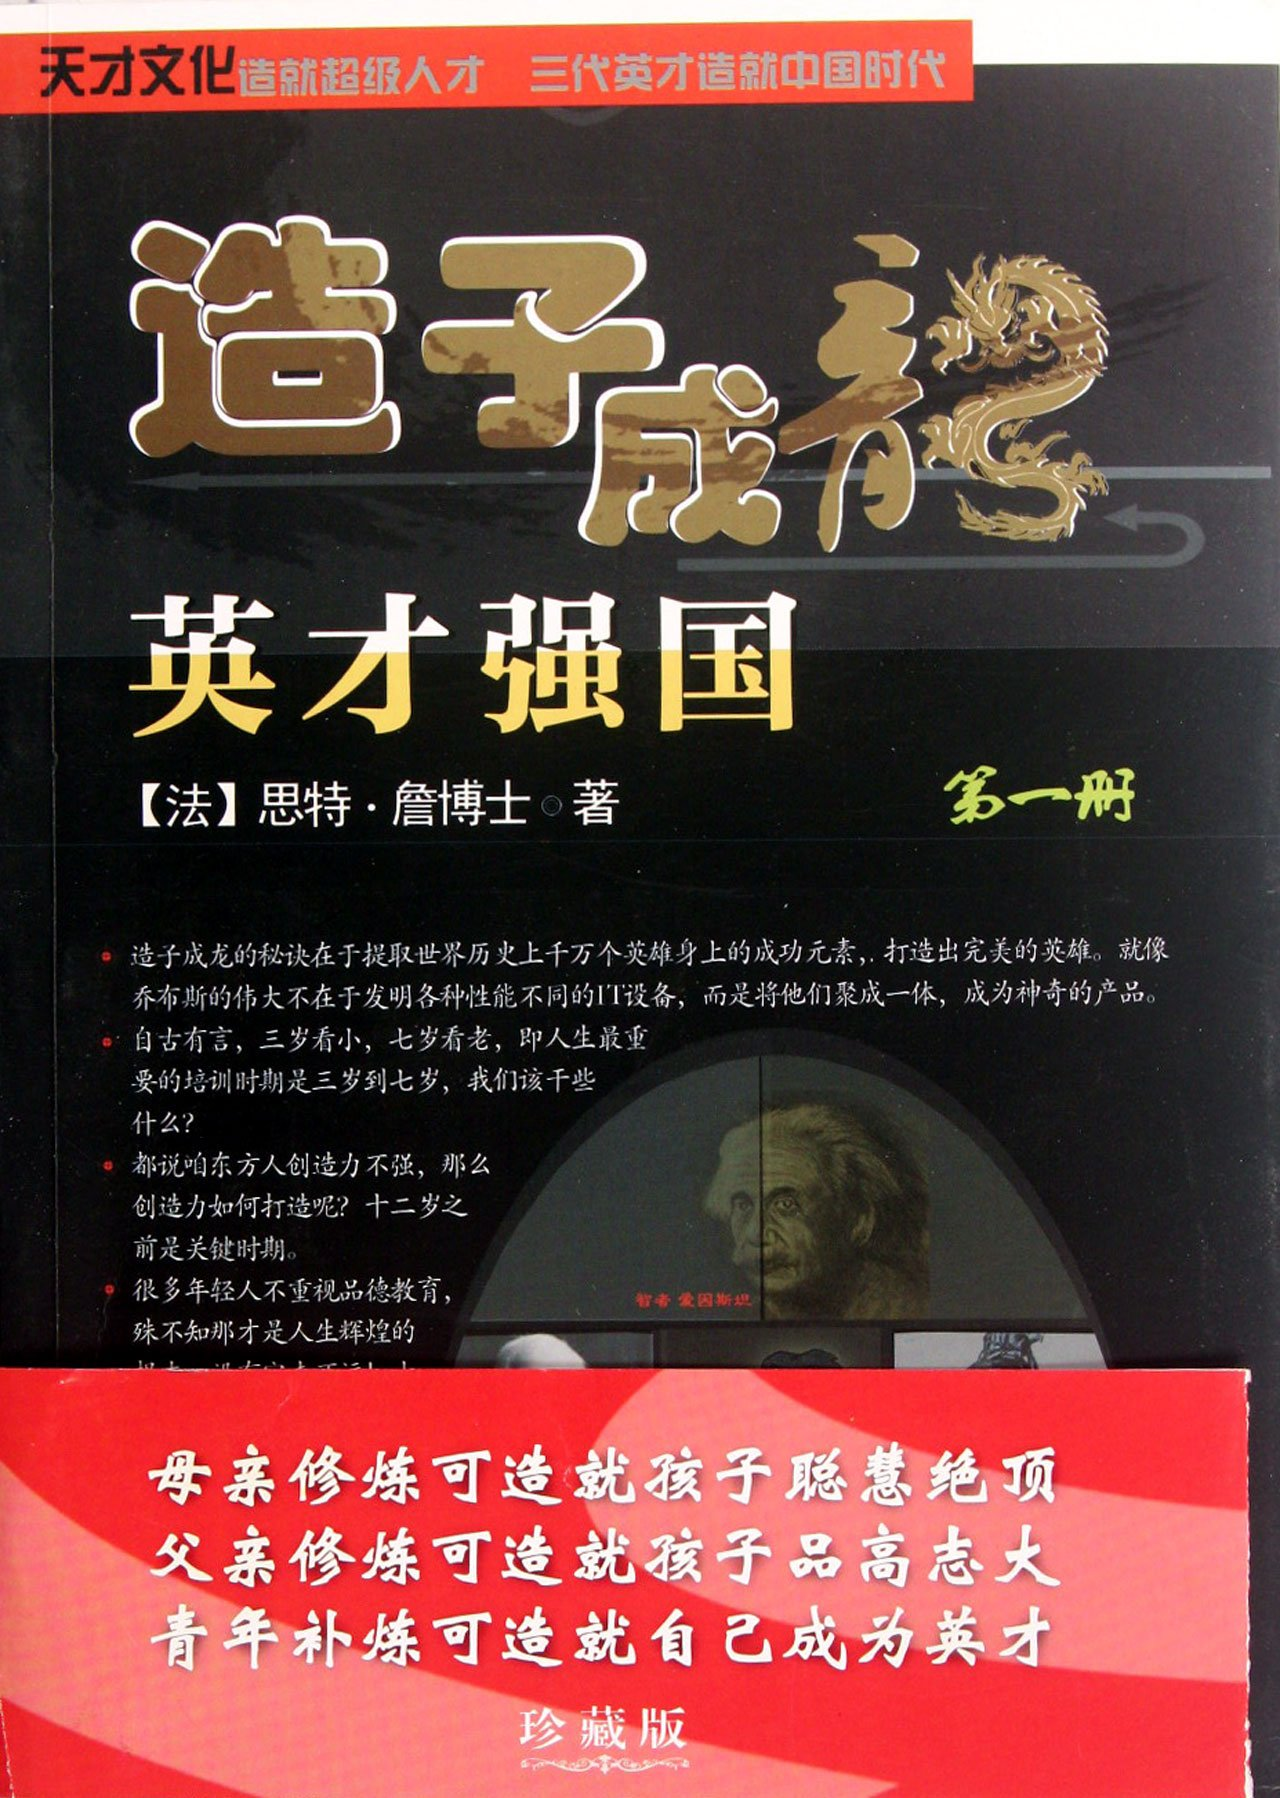 Giving Your Children a Bright Future - Person of Outstanding Ability Makes the Country Strong and Prosperous - Volume (Chinese Edition) ebook